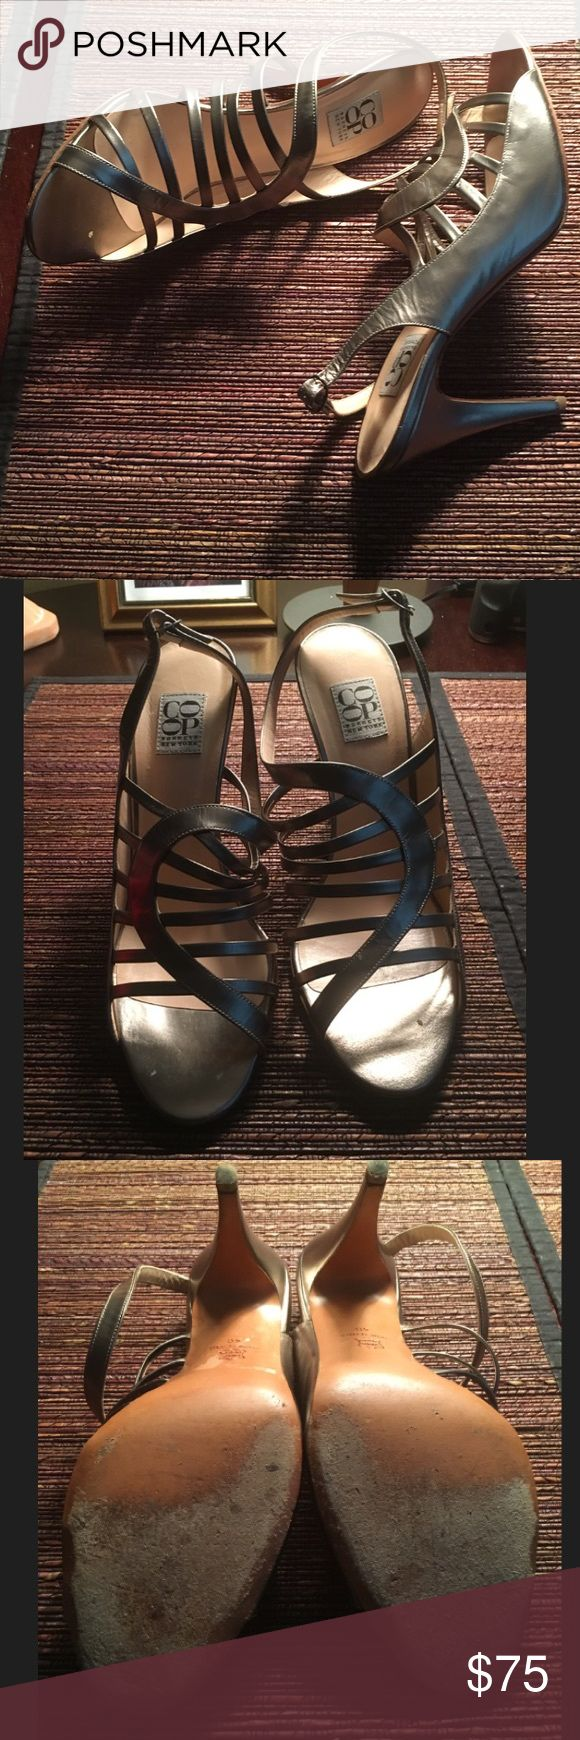 Pewter Sandal size 40 COOP by Barney's New York, leather upper and sole. 4 inch heel. This Sandal is dazzling and has much life left! Barneys New York CO-OP Shoes Heels